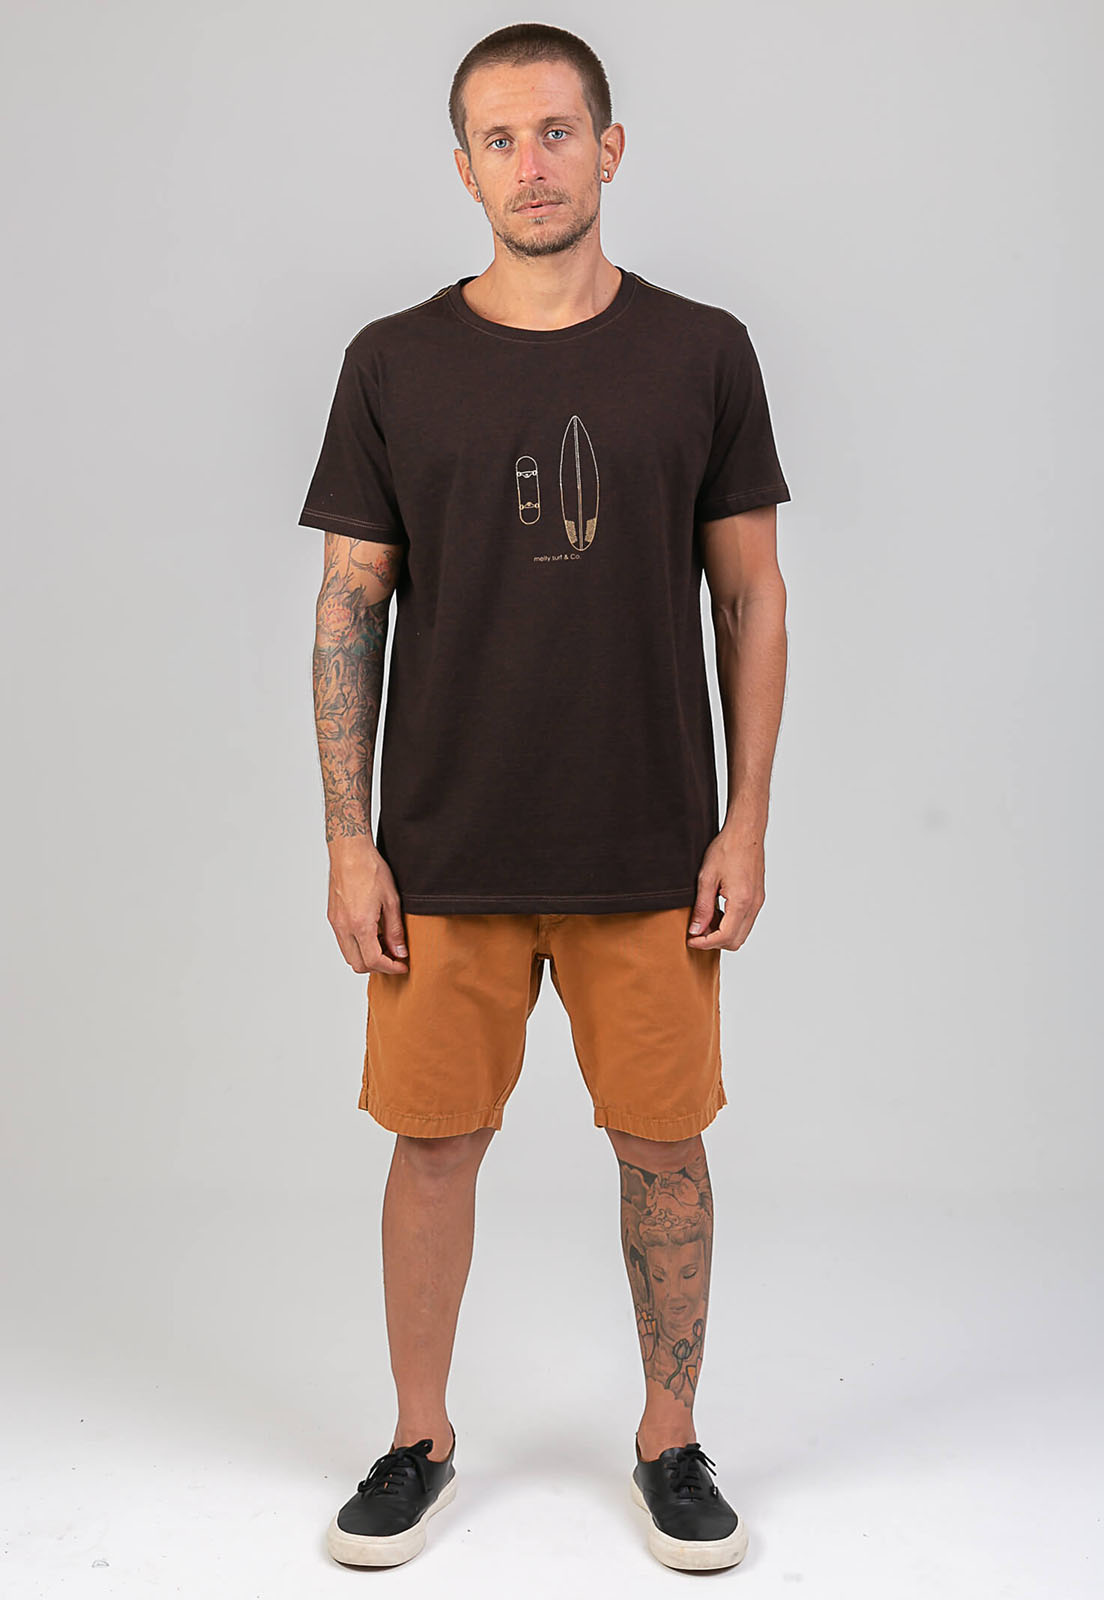 T-Shirt Surf Café melty  - melty surf & Co.